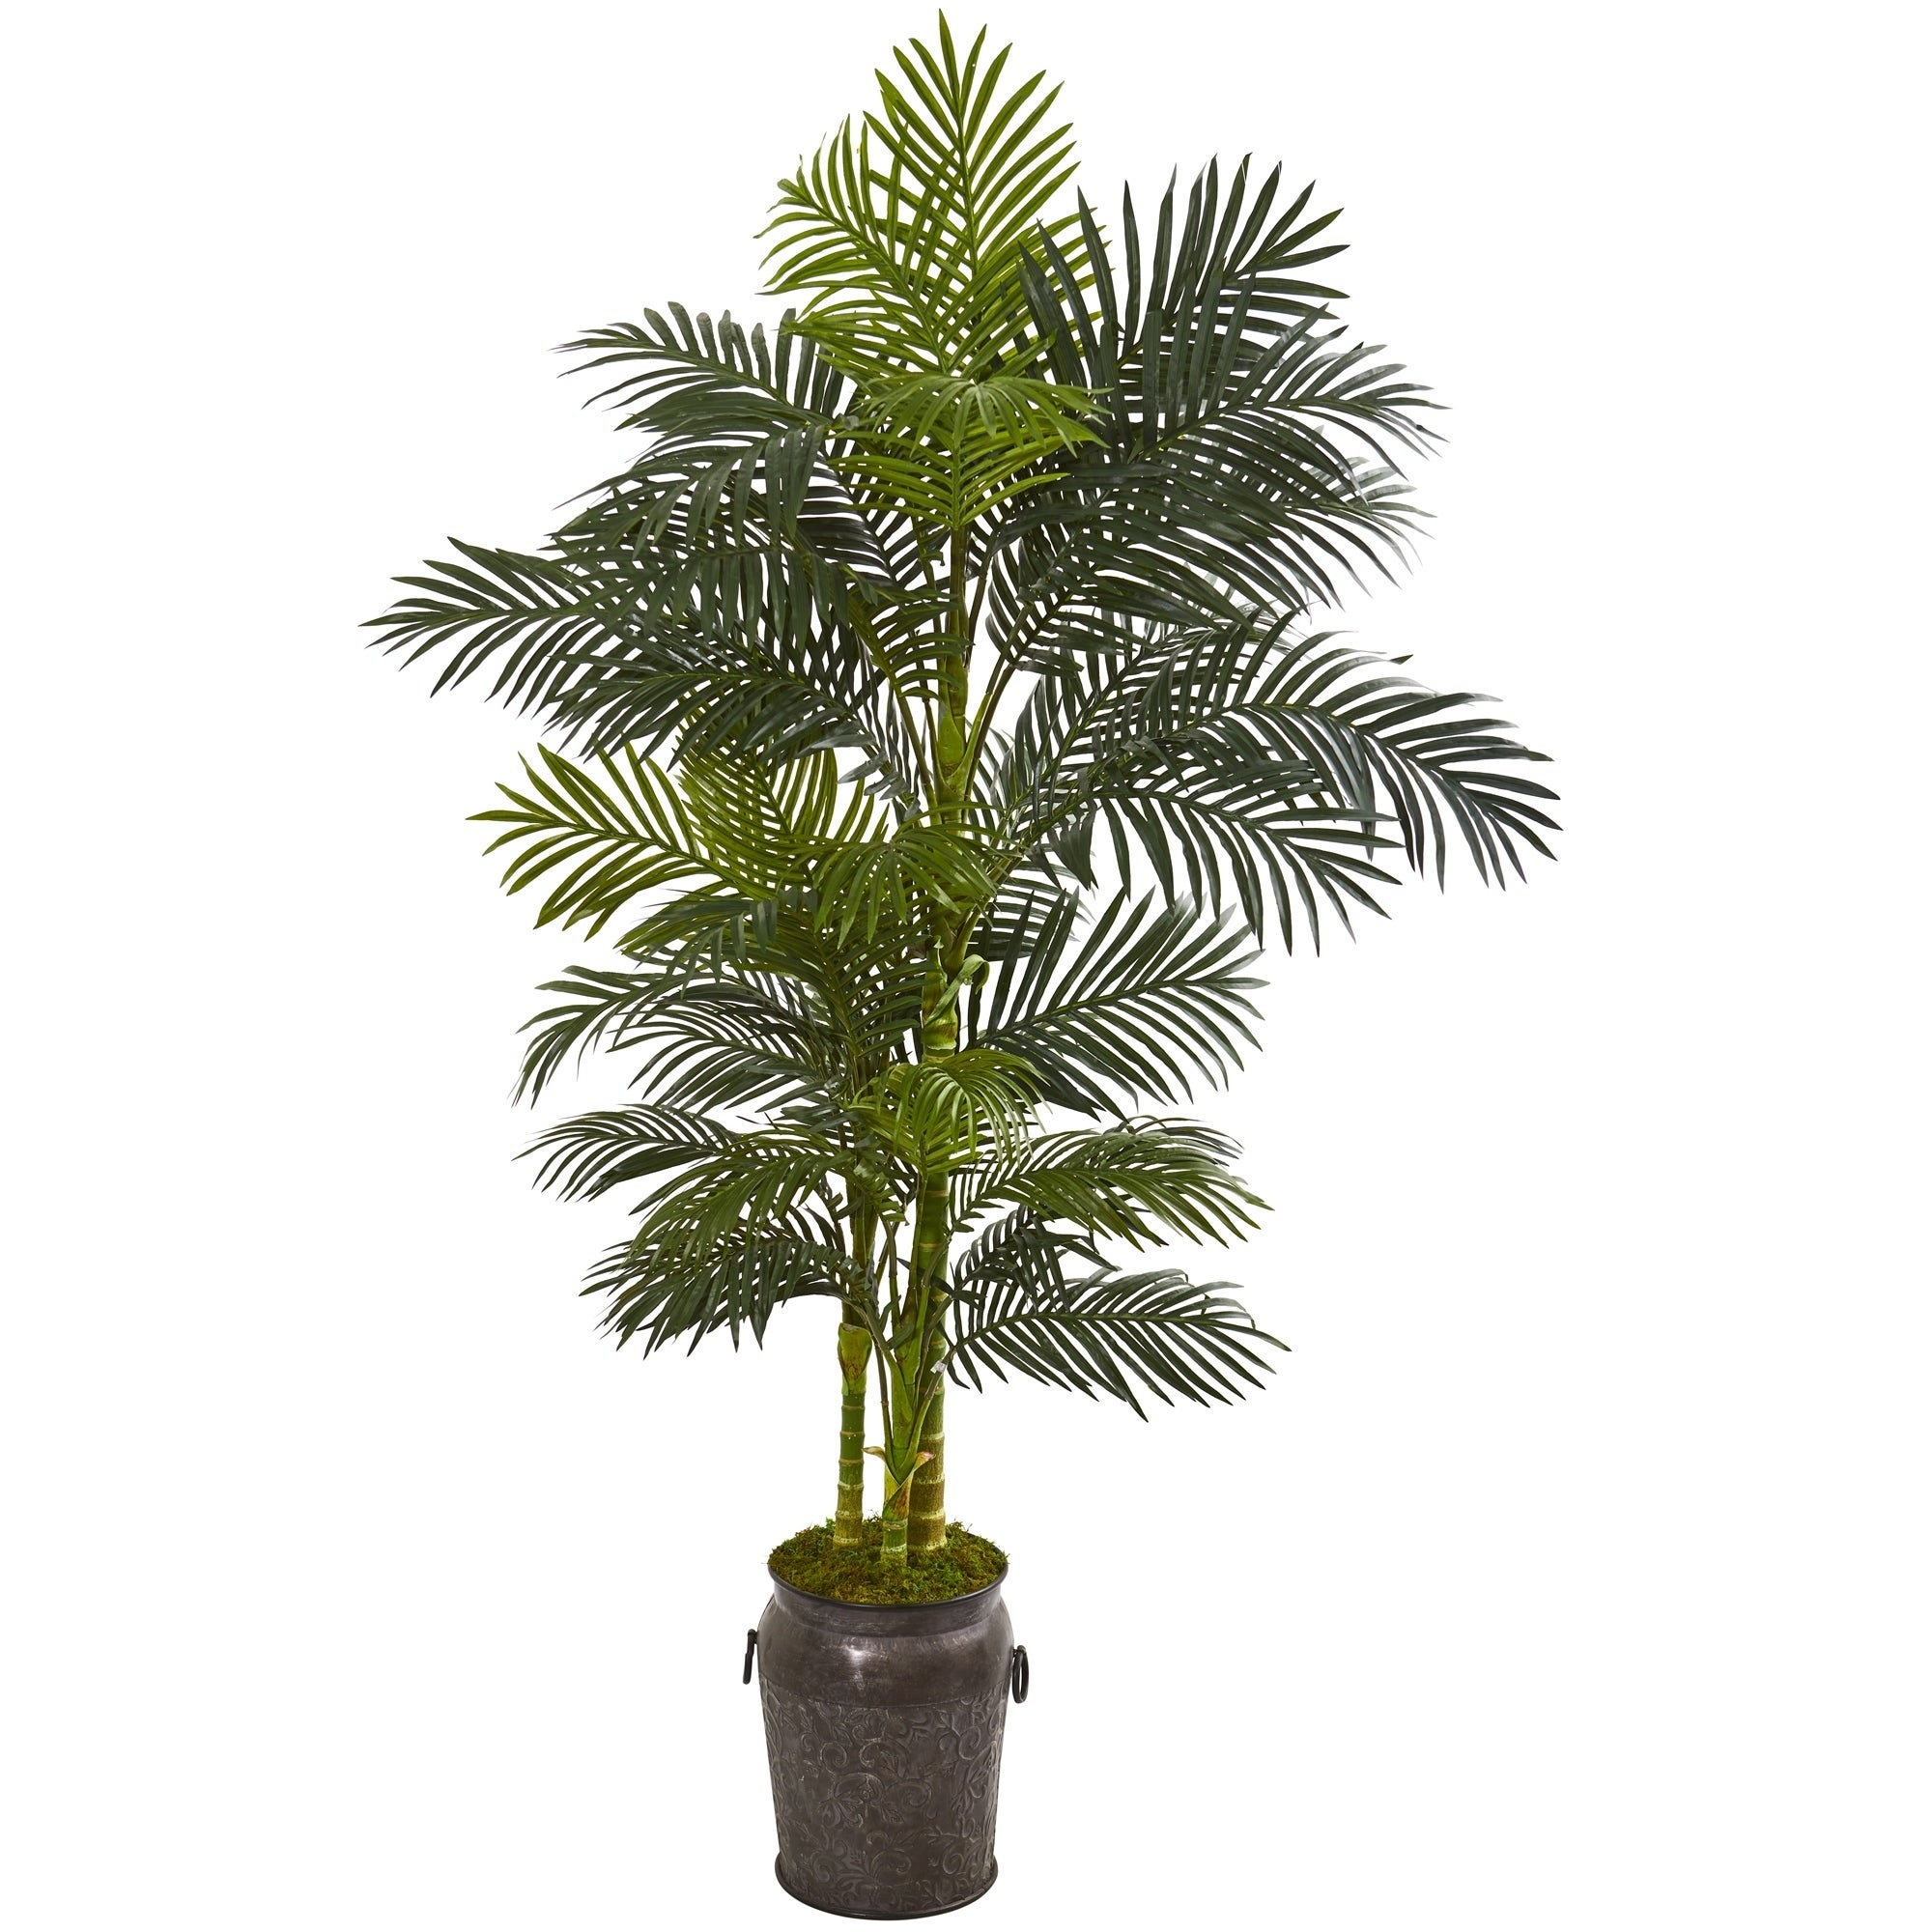 7 Golden Cane Artificial Palm Tree in Decorative Planter